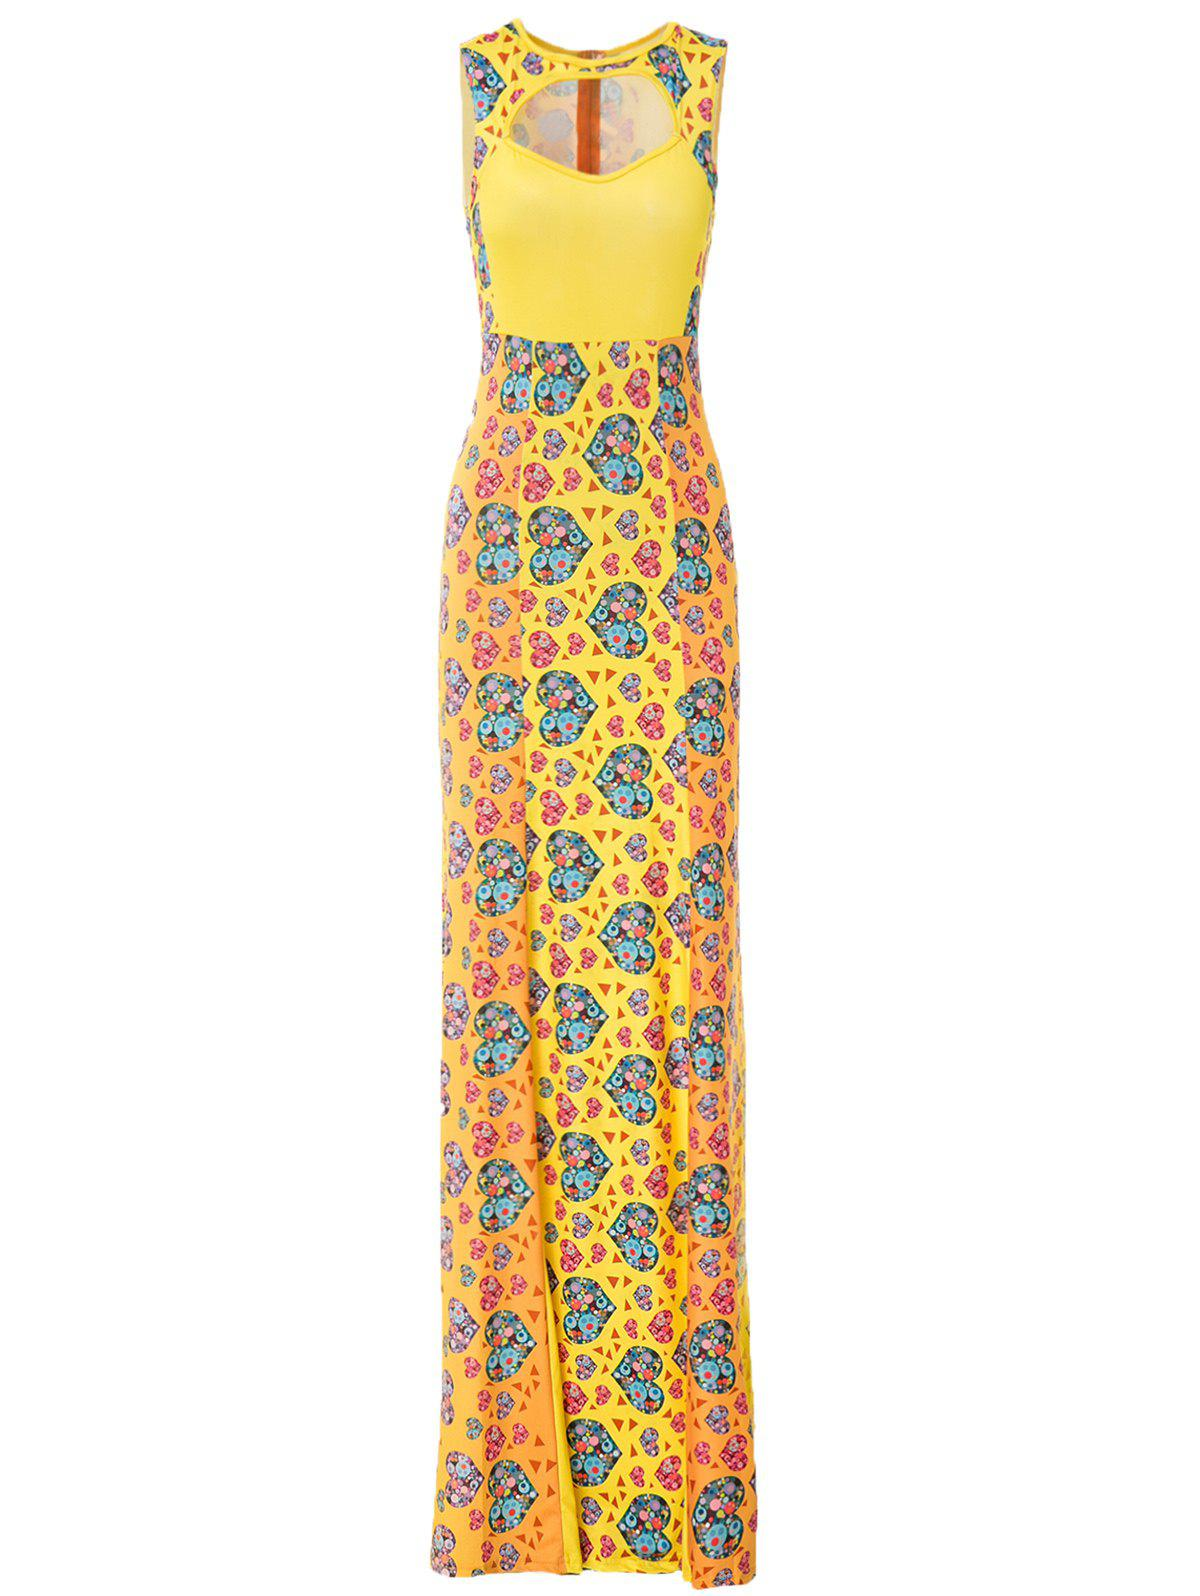 Charming Women's Jewel Neck Sleeveless Hollow Out Heart Print Mermaid Dress - YELLOW L